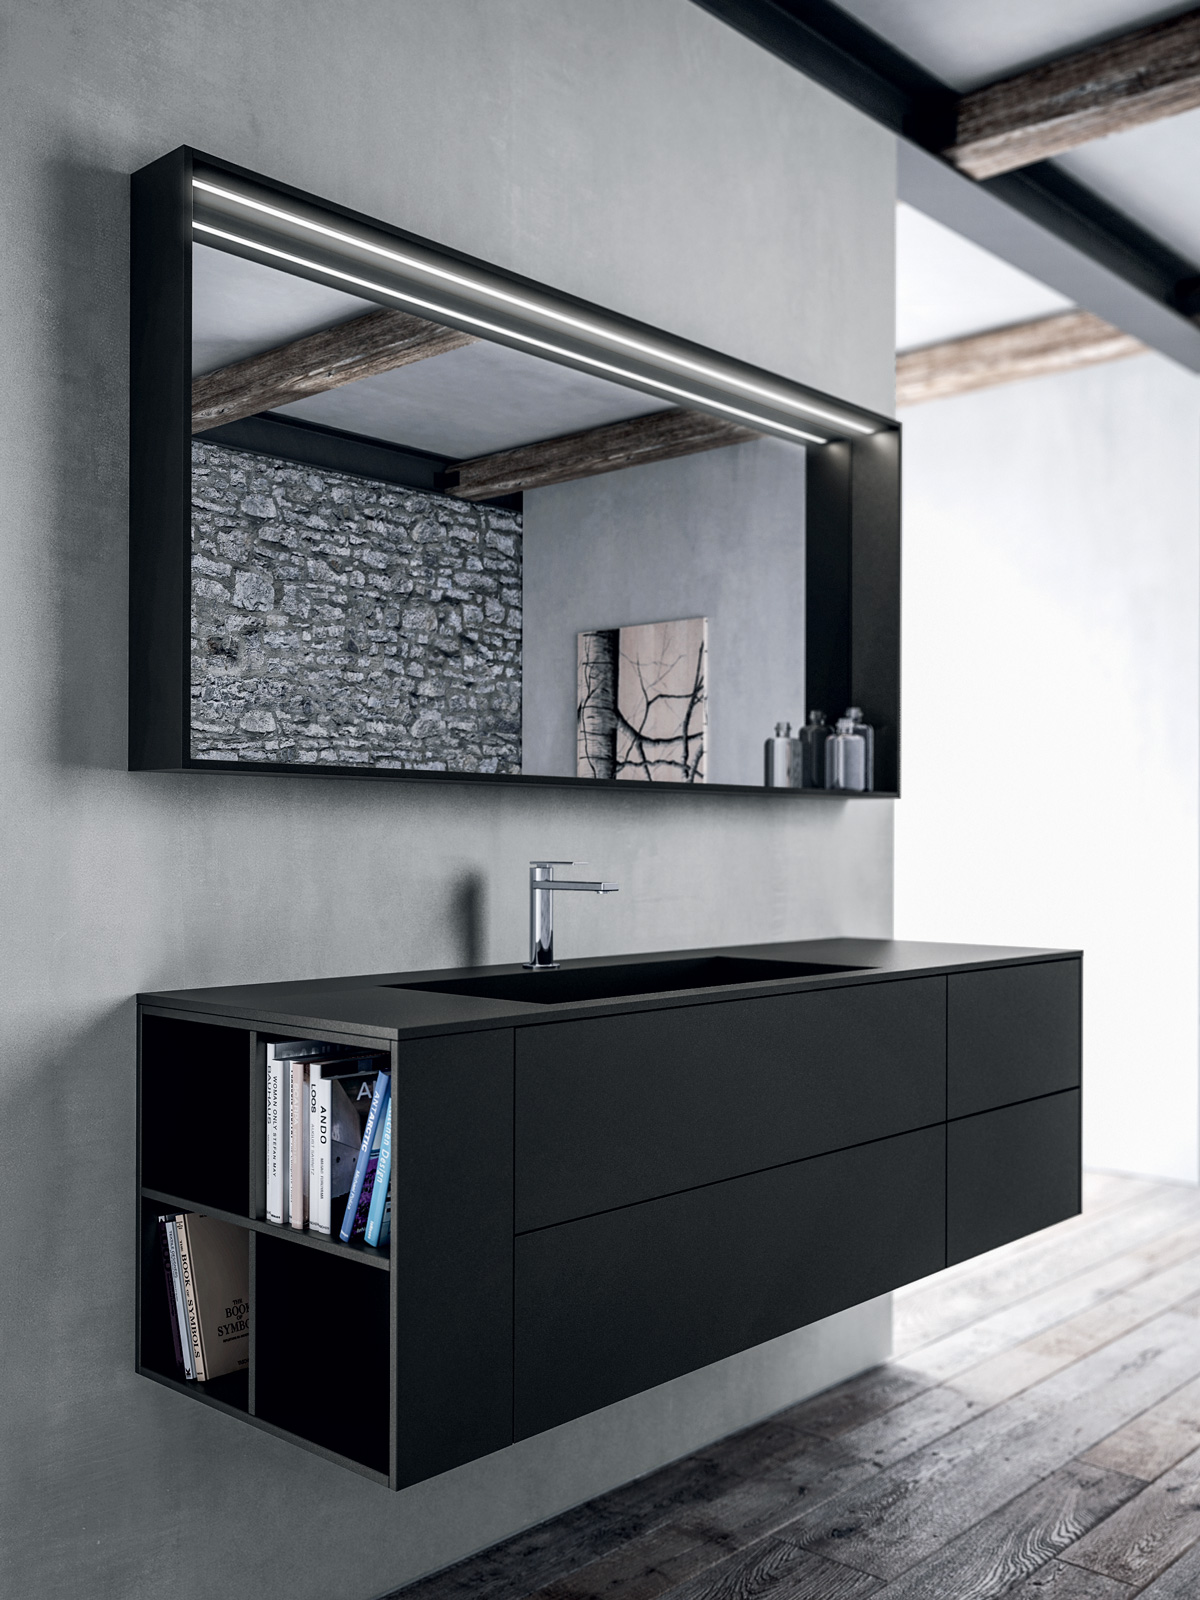 Cool related posts with spa in casa arredamento for Arredamento spa e centri benessere